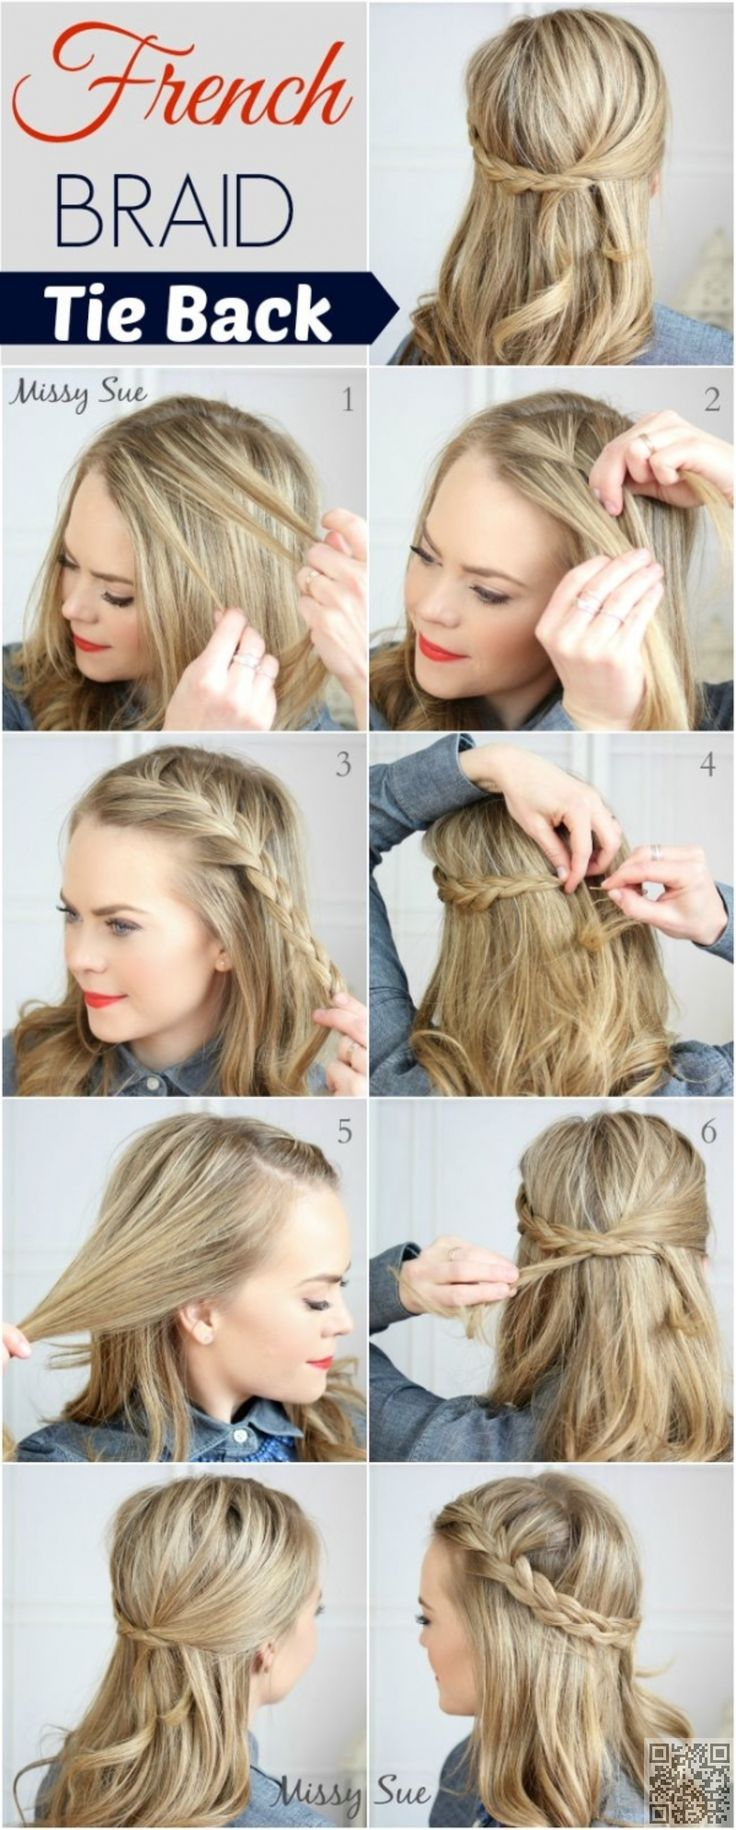 20. #French Braid Tie Back - So #Sweet for Summer! Try #These 23 Half up, Half down Hair Styles ... → Hair #Hairstyles